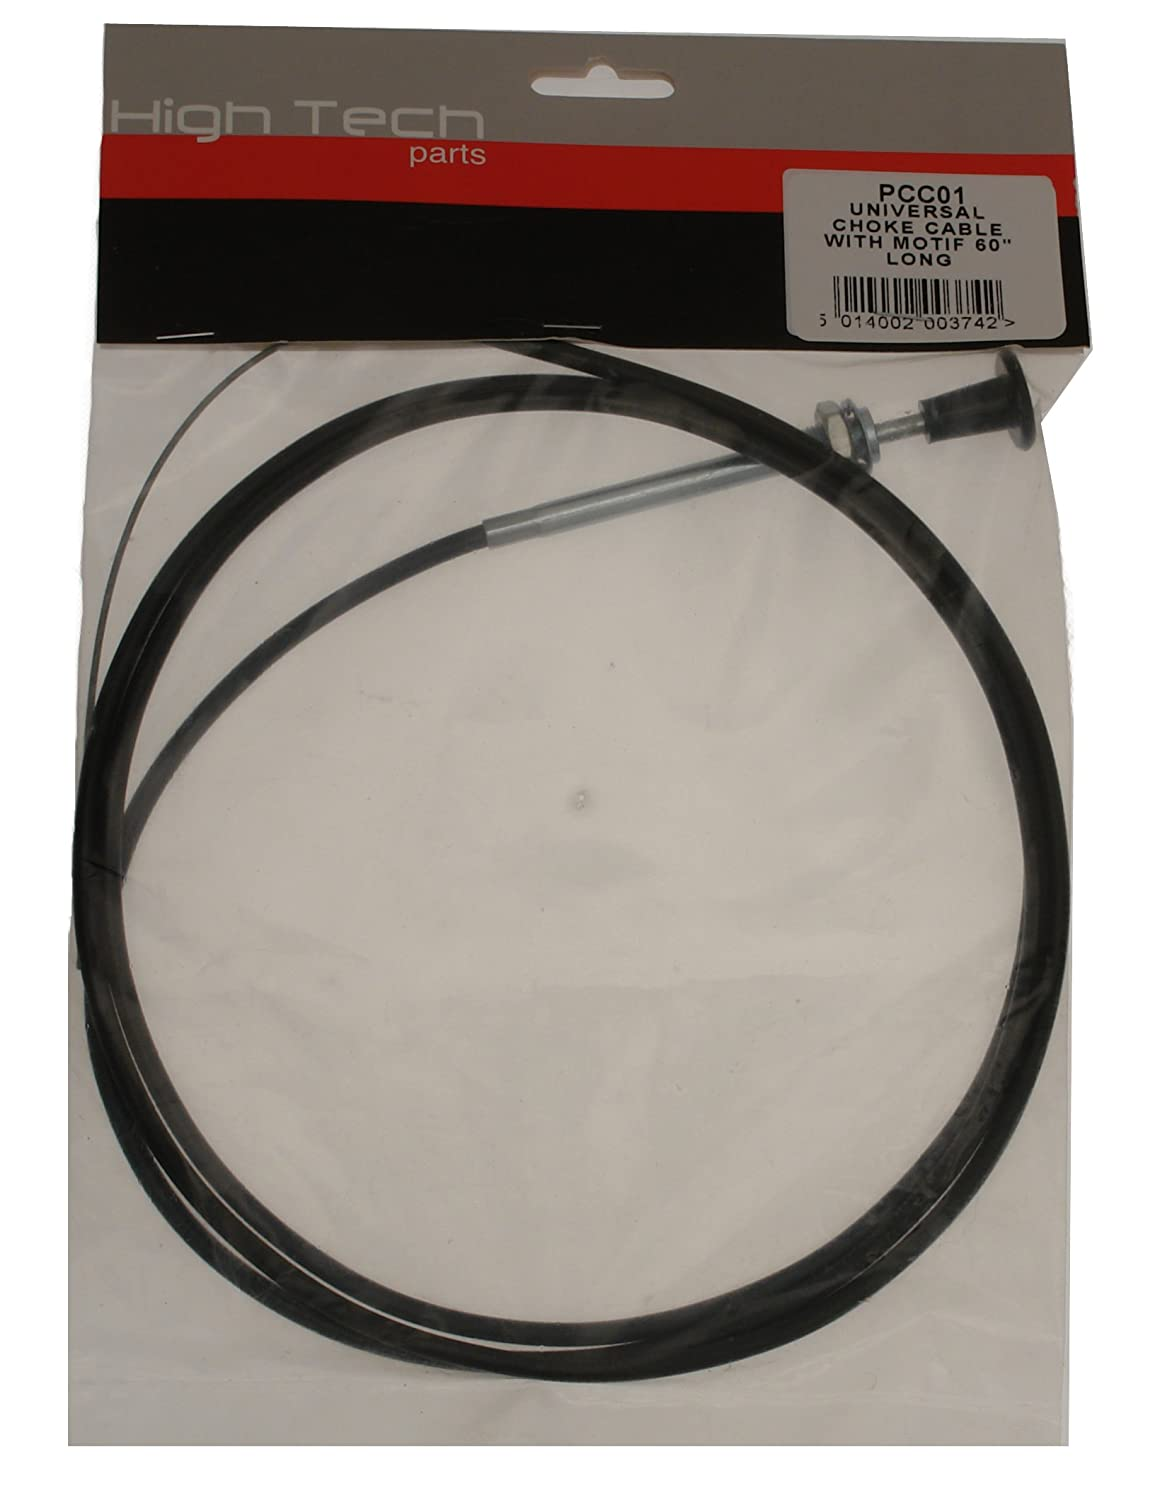 60in. Standard Pull Lock High Tech Parts Choke Cable